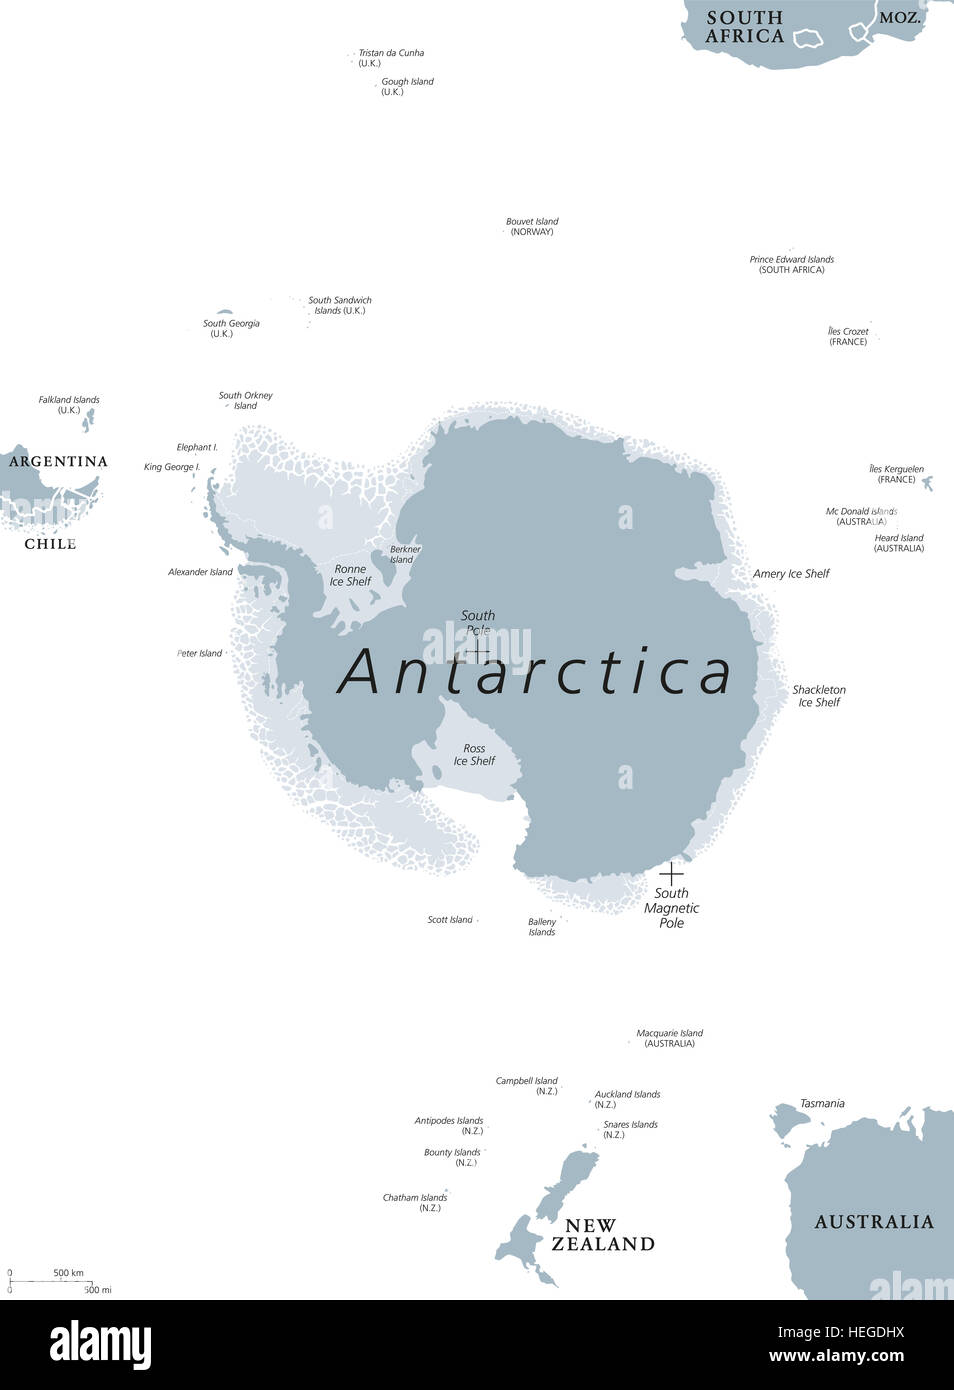 Antarctica political map the antarctic polar region around the antarctica political map the antarctic polar region around the earth south pole with islands and sciox Images